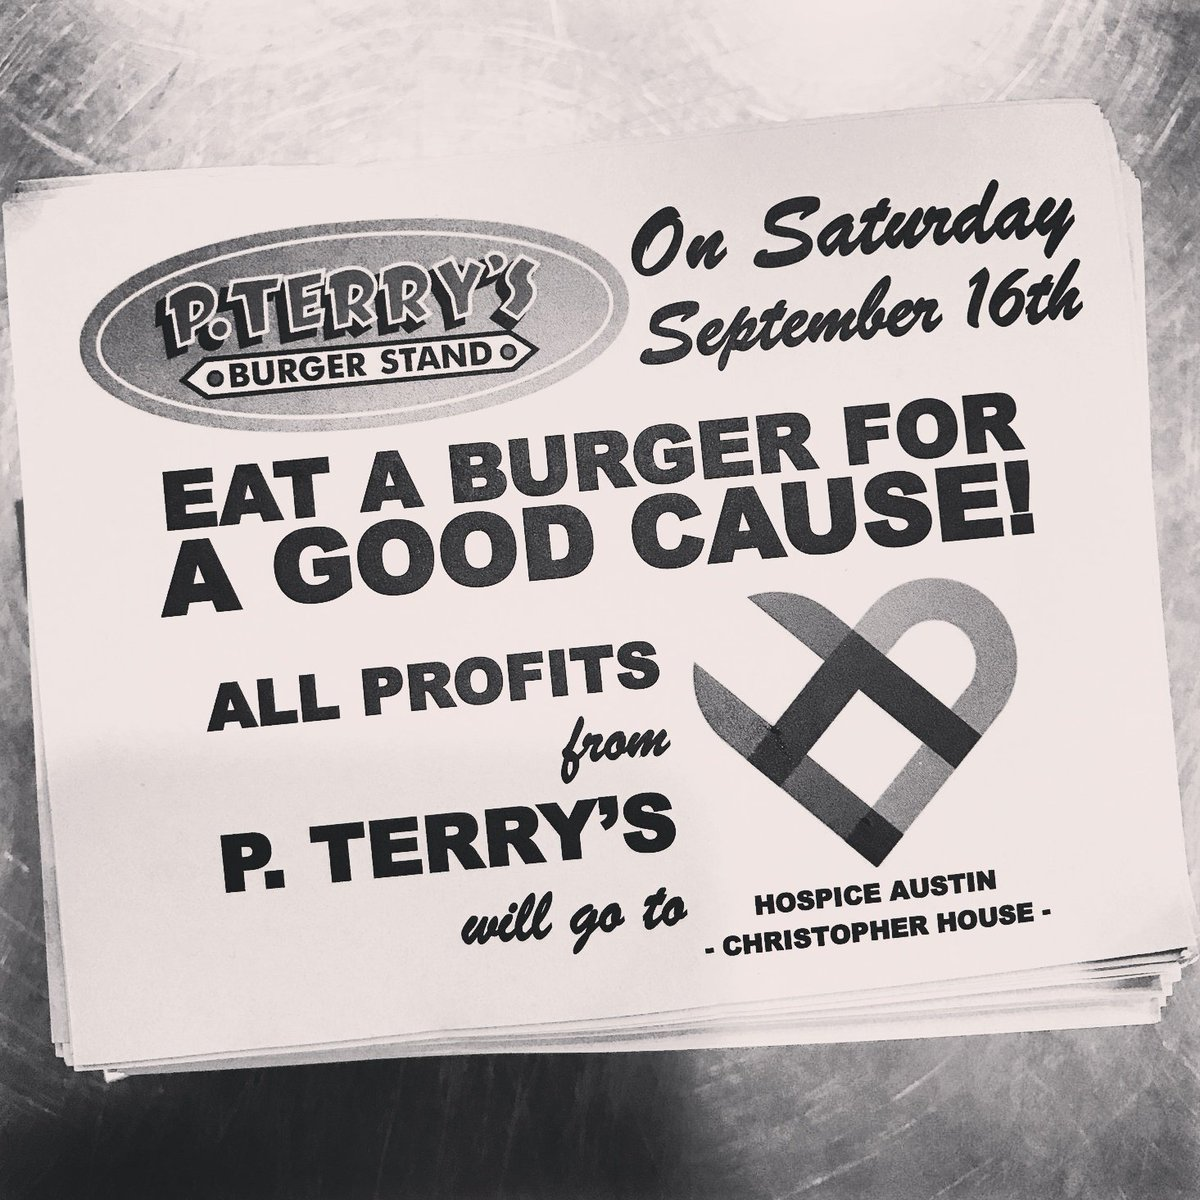 P. Terry's Giving Back Day raises $34,011 for Season for Caring